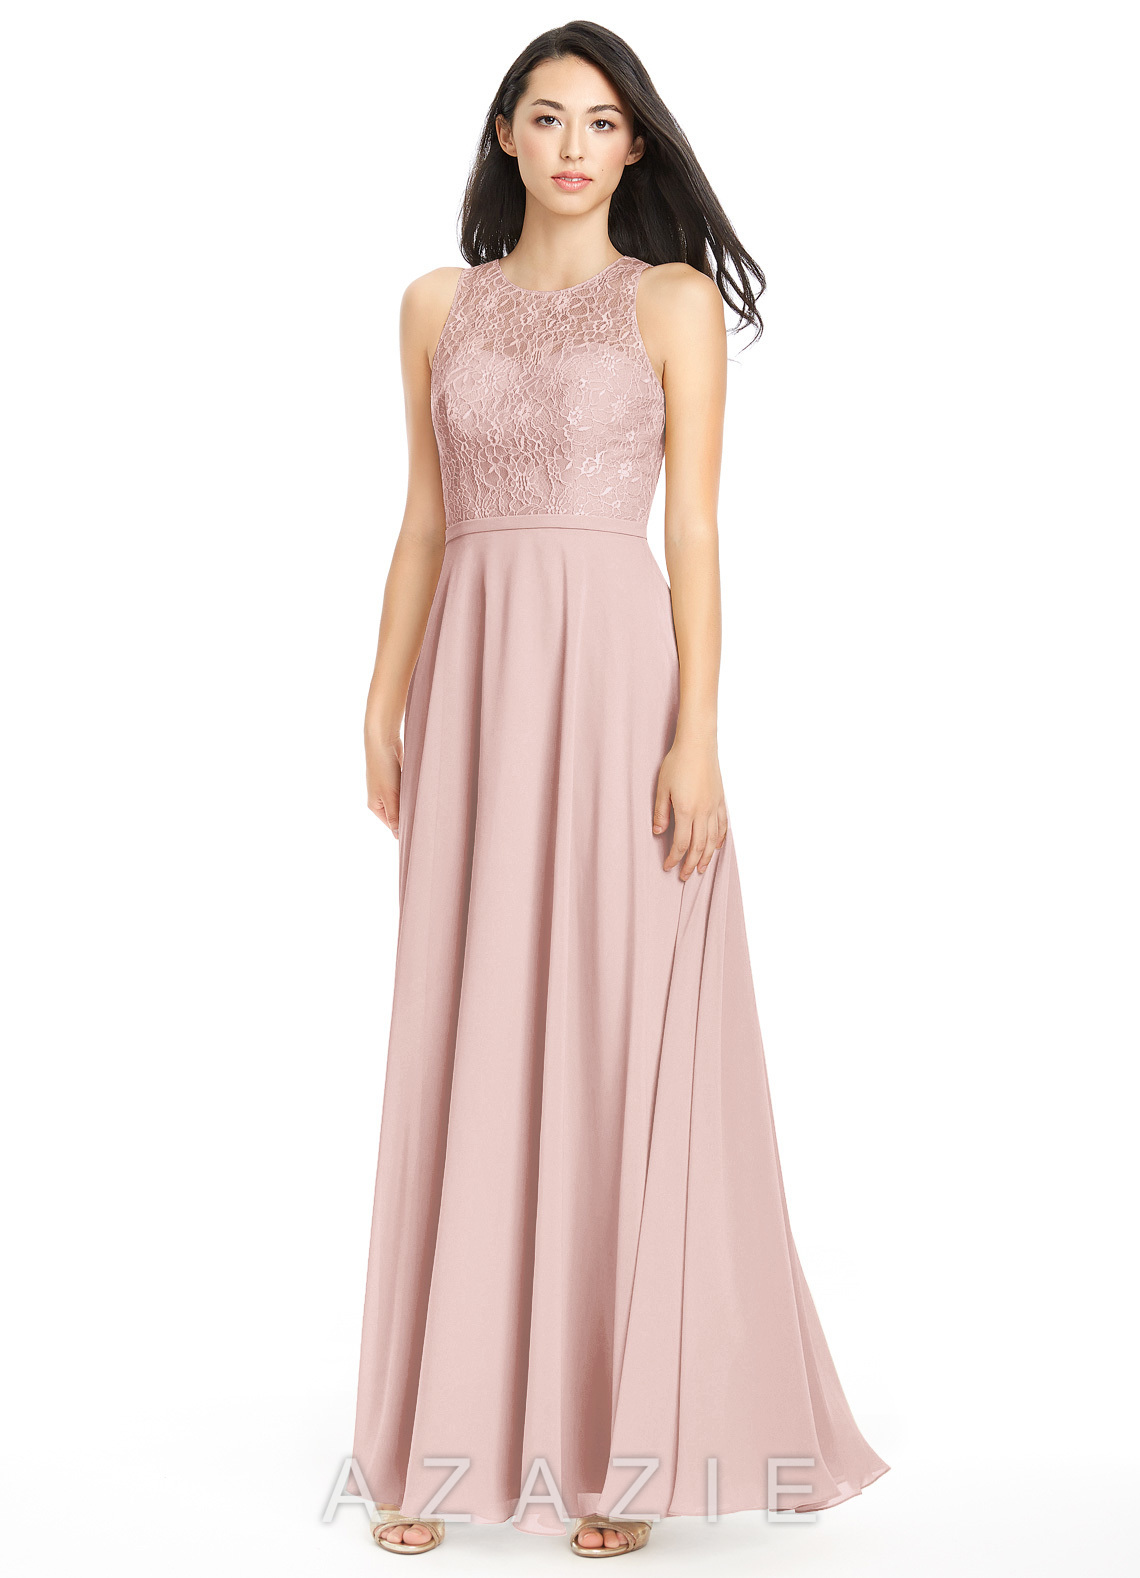 Rose pink bridesmaid dresses dress yp for Rose pink wedding dress